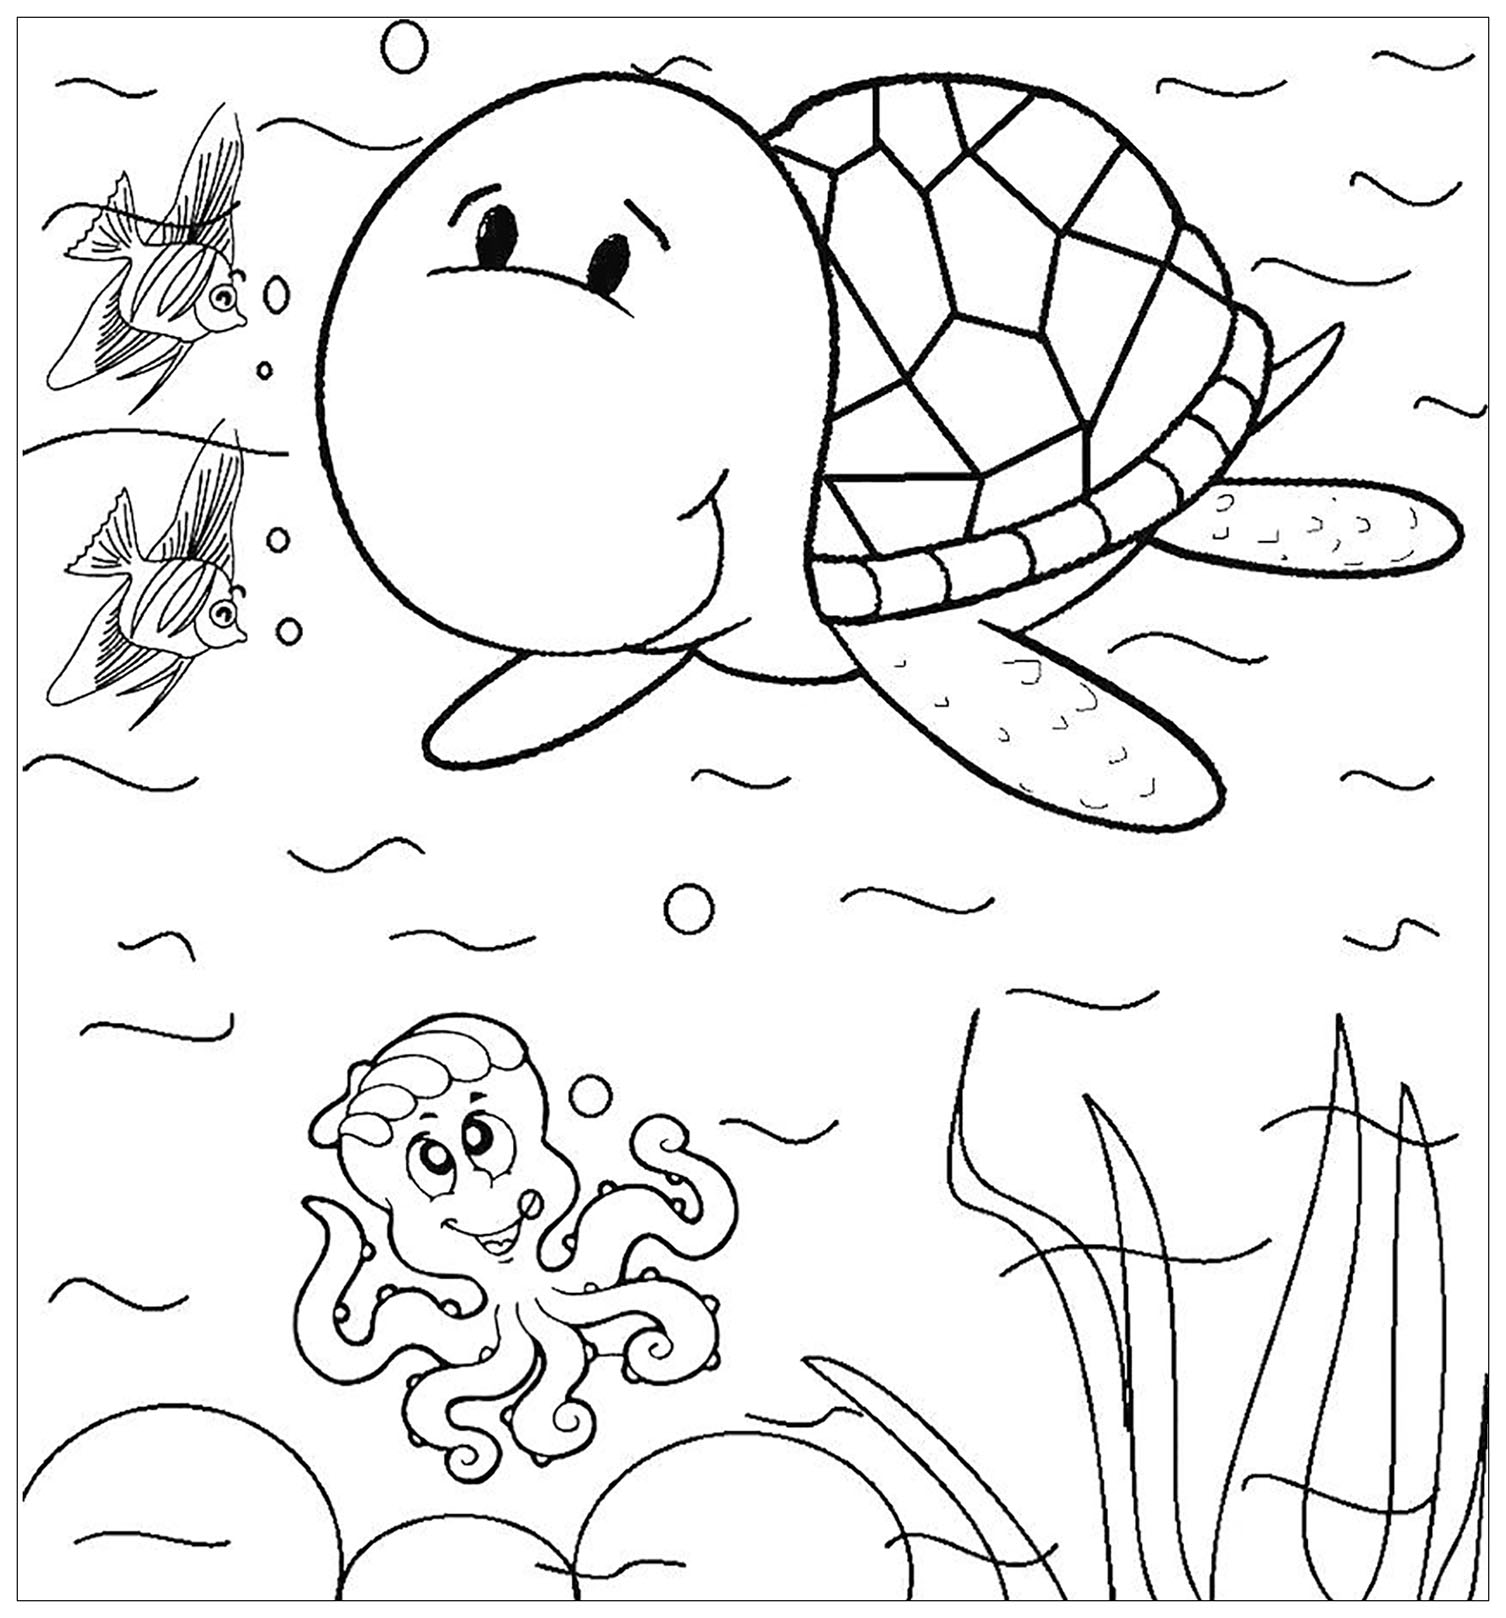 turtle coloring book page turtles coloring pages download and print turtles coloring book page turtle